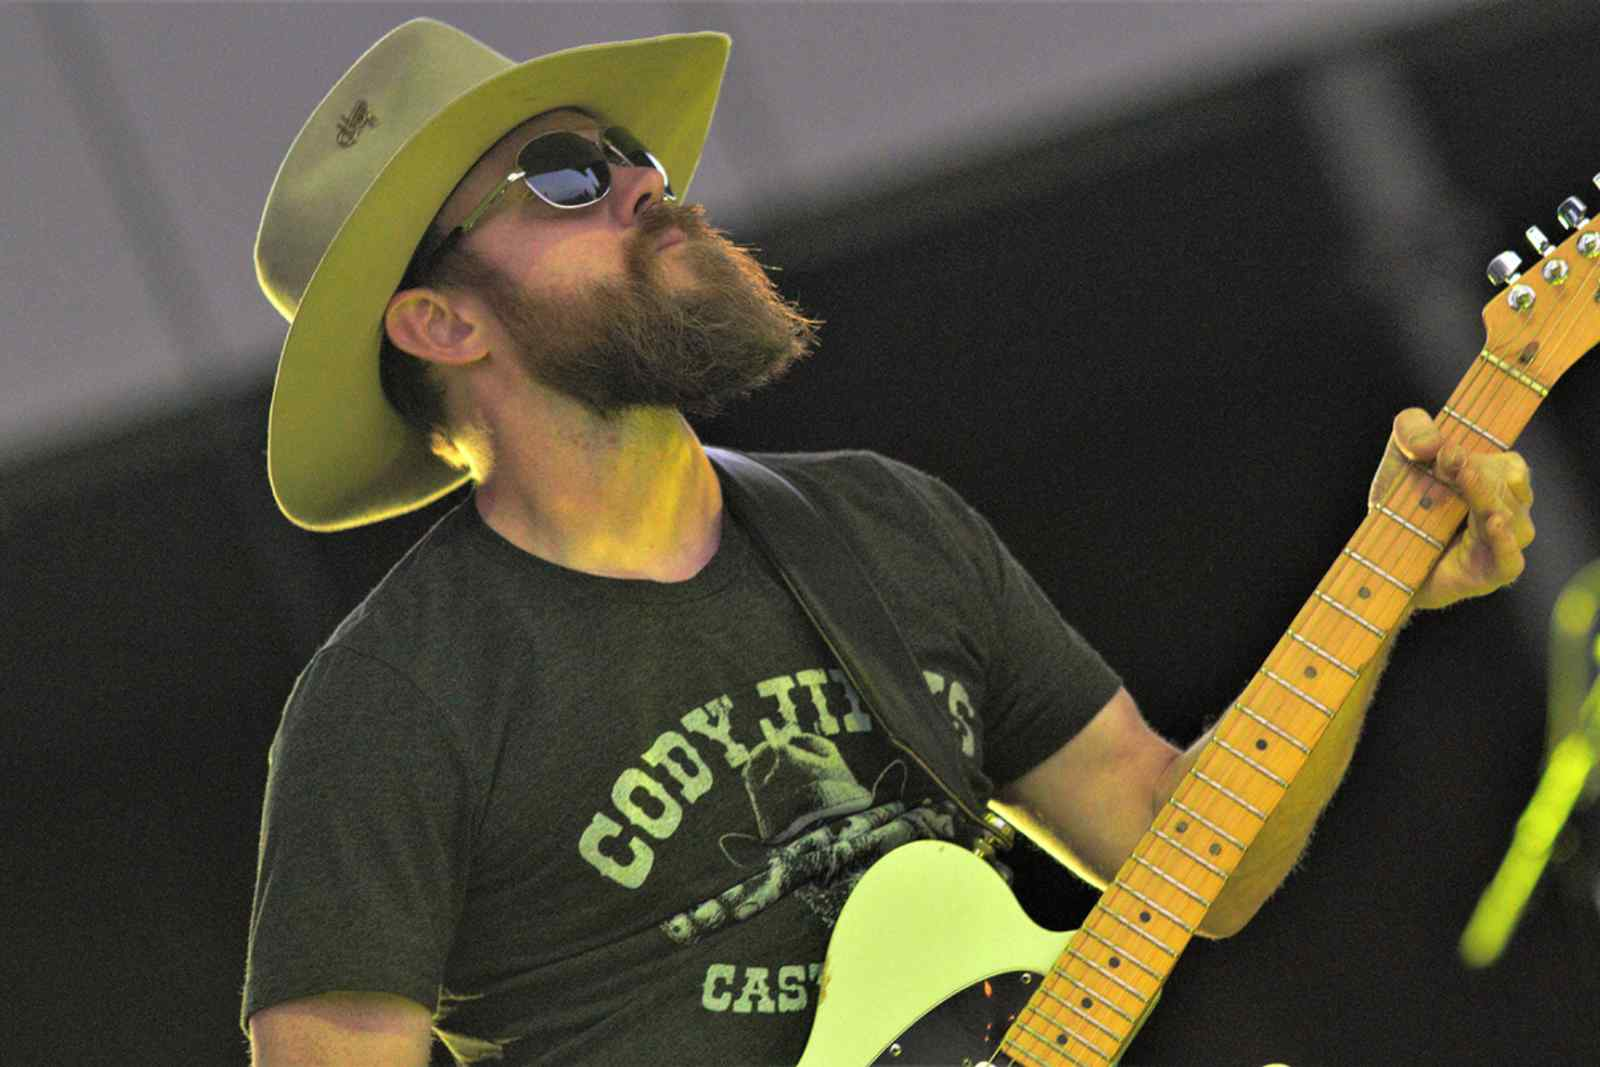 The Metalhead Who Played Country Guitar